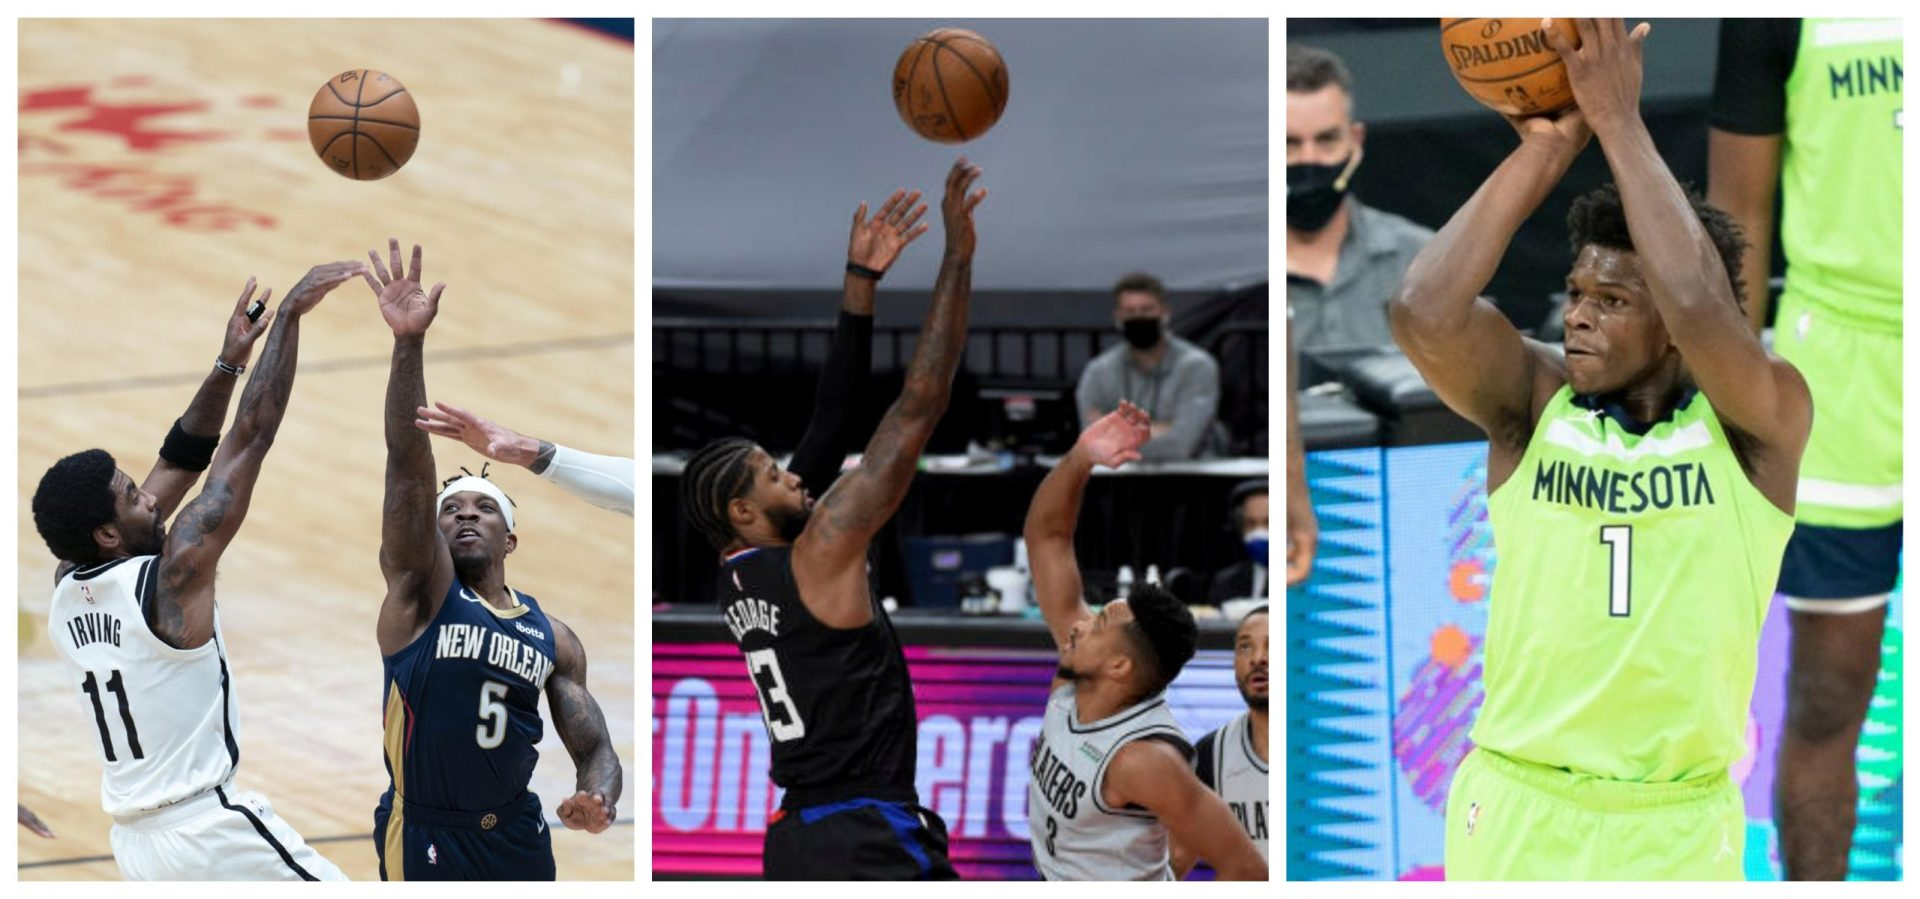 NBA Week 18 April 20 Results: Scores, standings, match summary and highlights - THE SPORTS ROOM